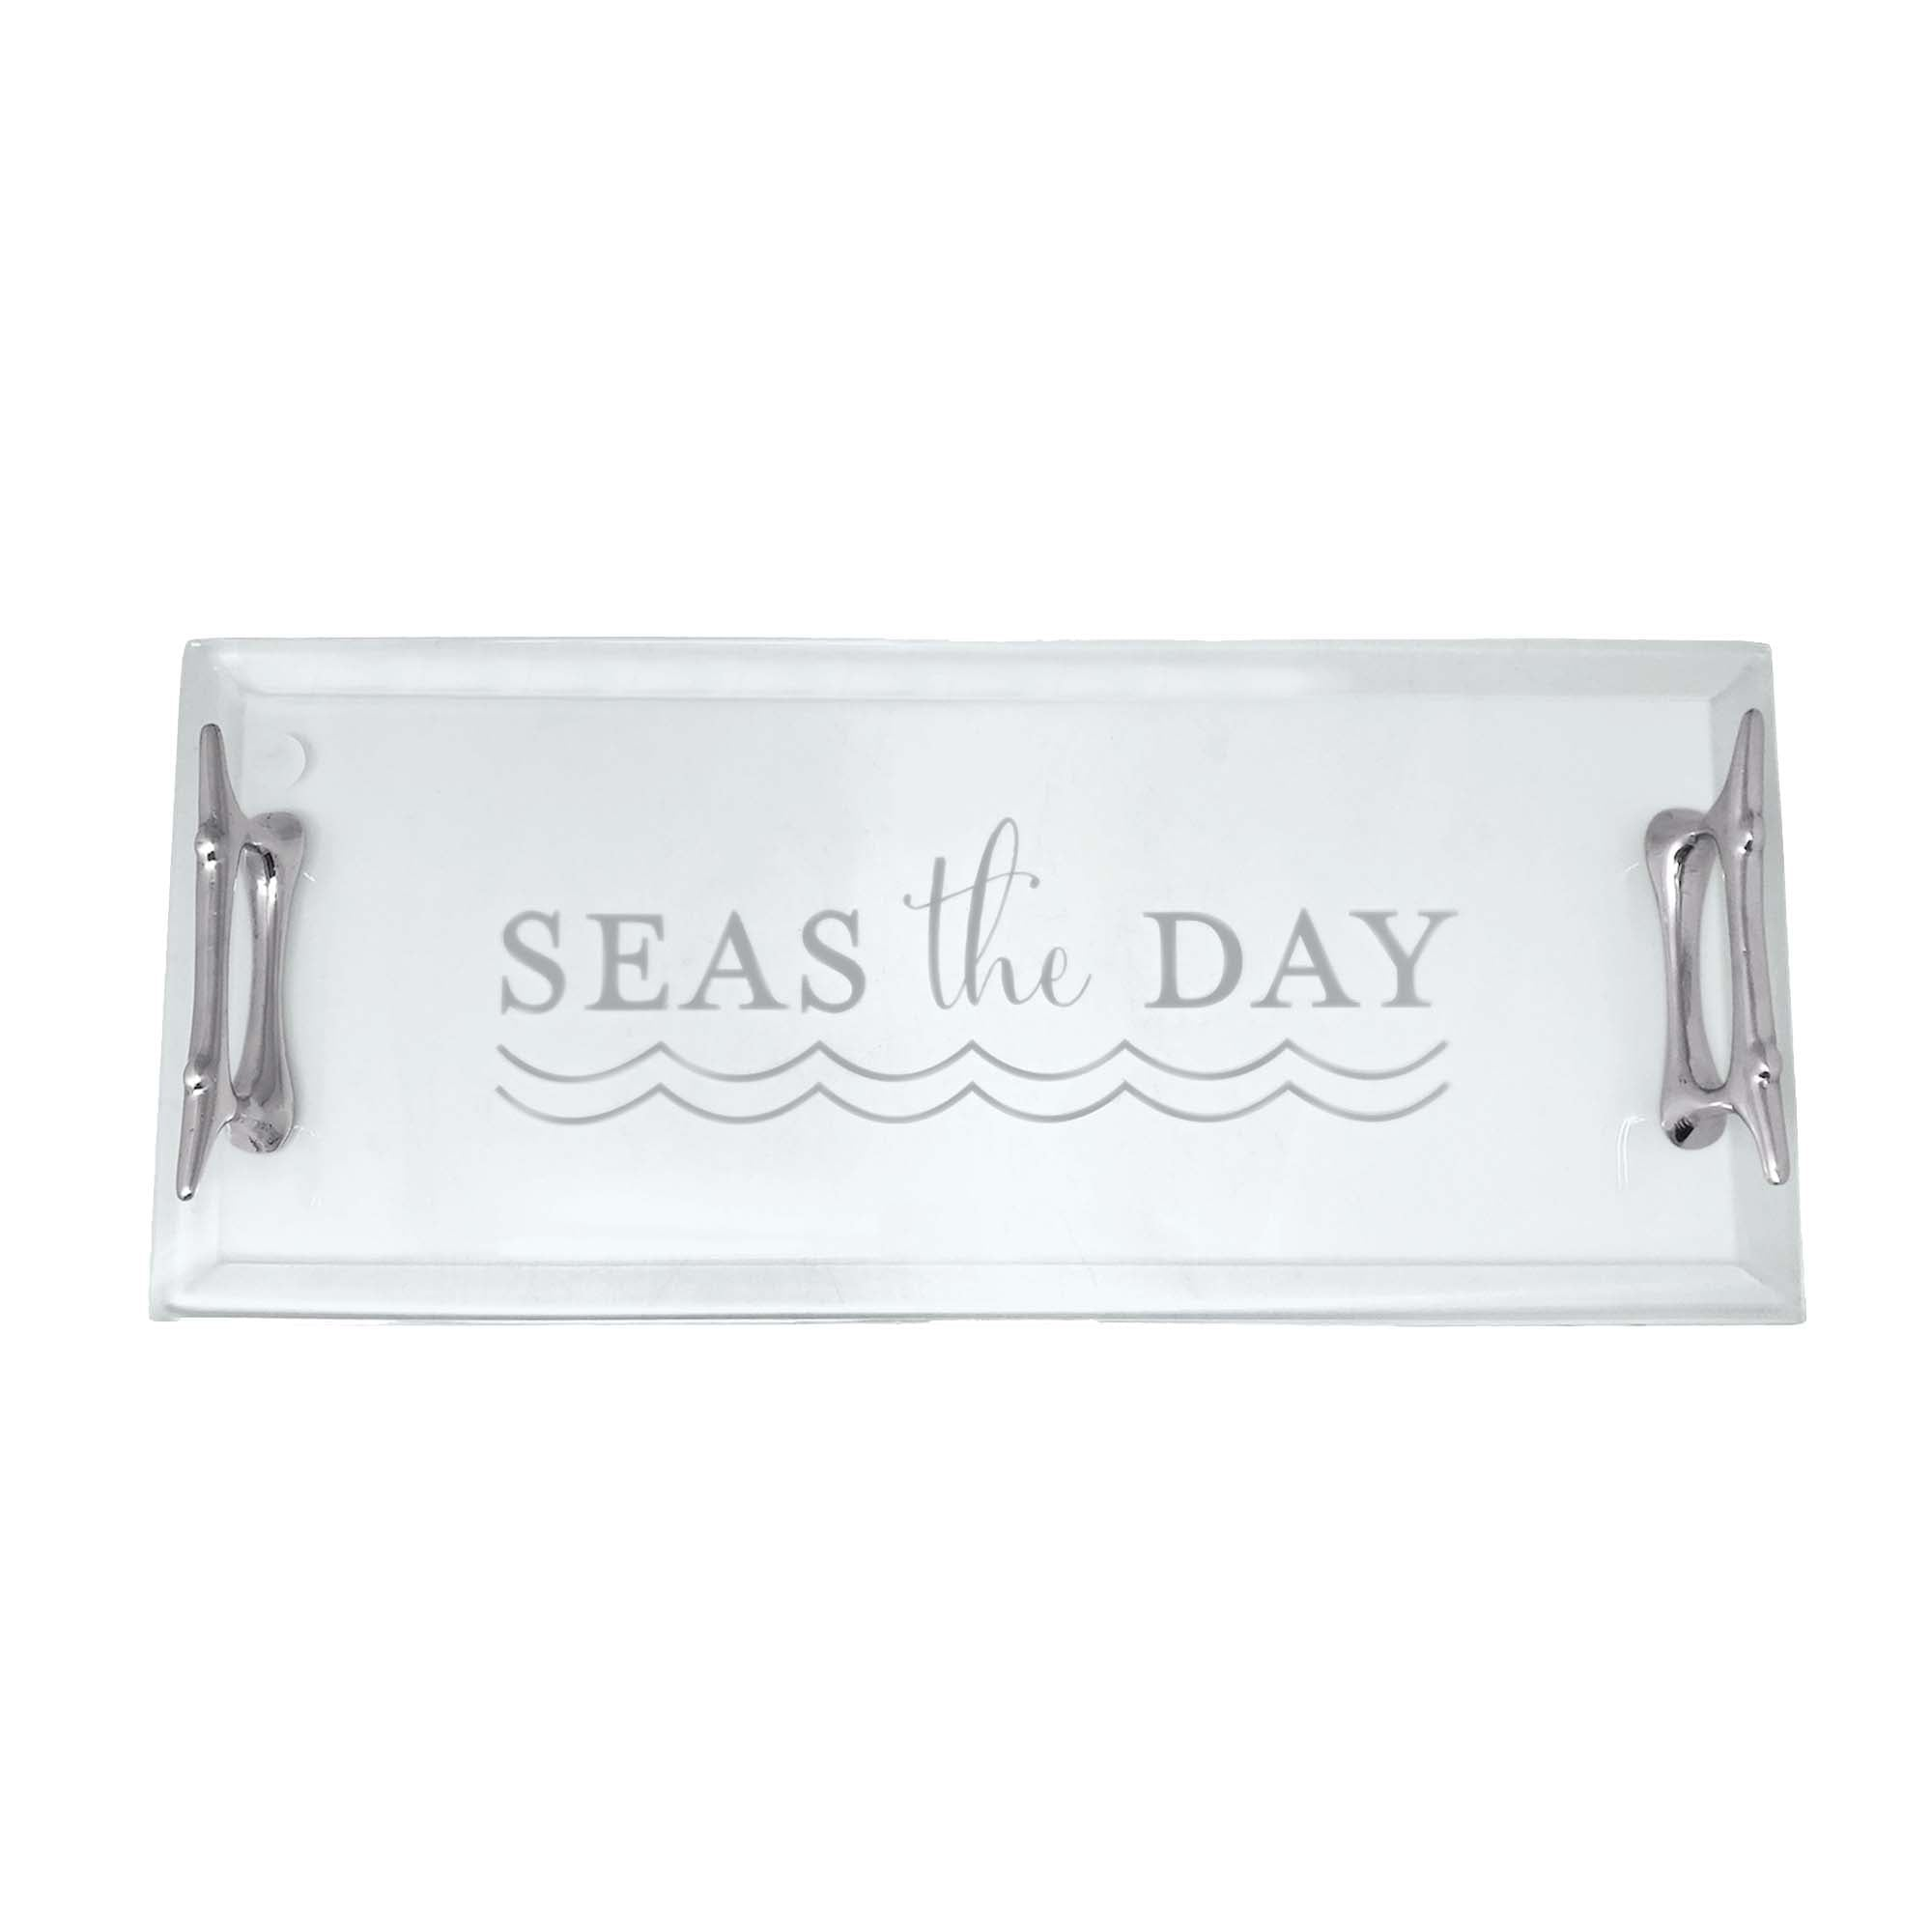 Seas The Day Boat Cleat Handled Acrylic Tray